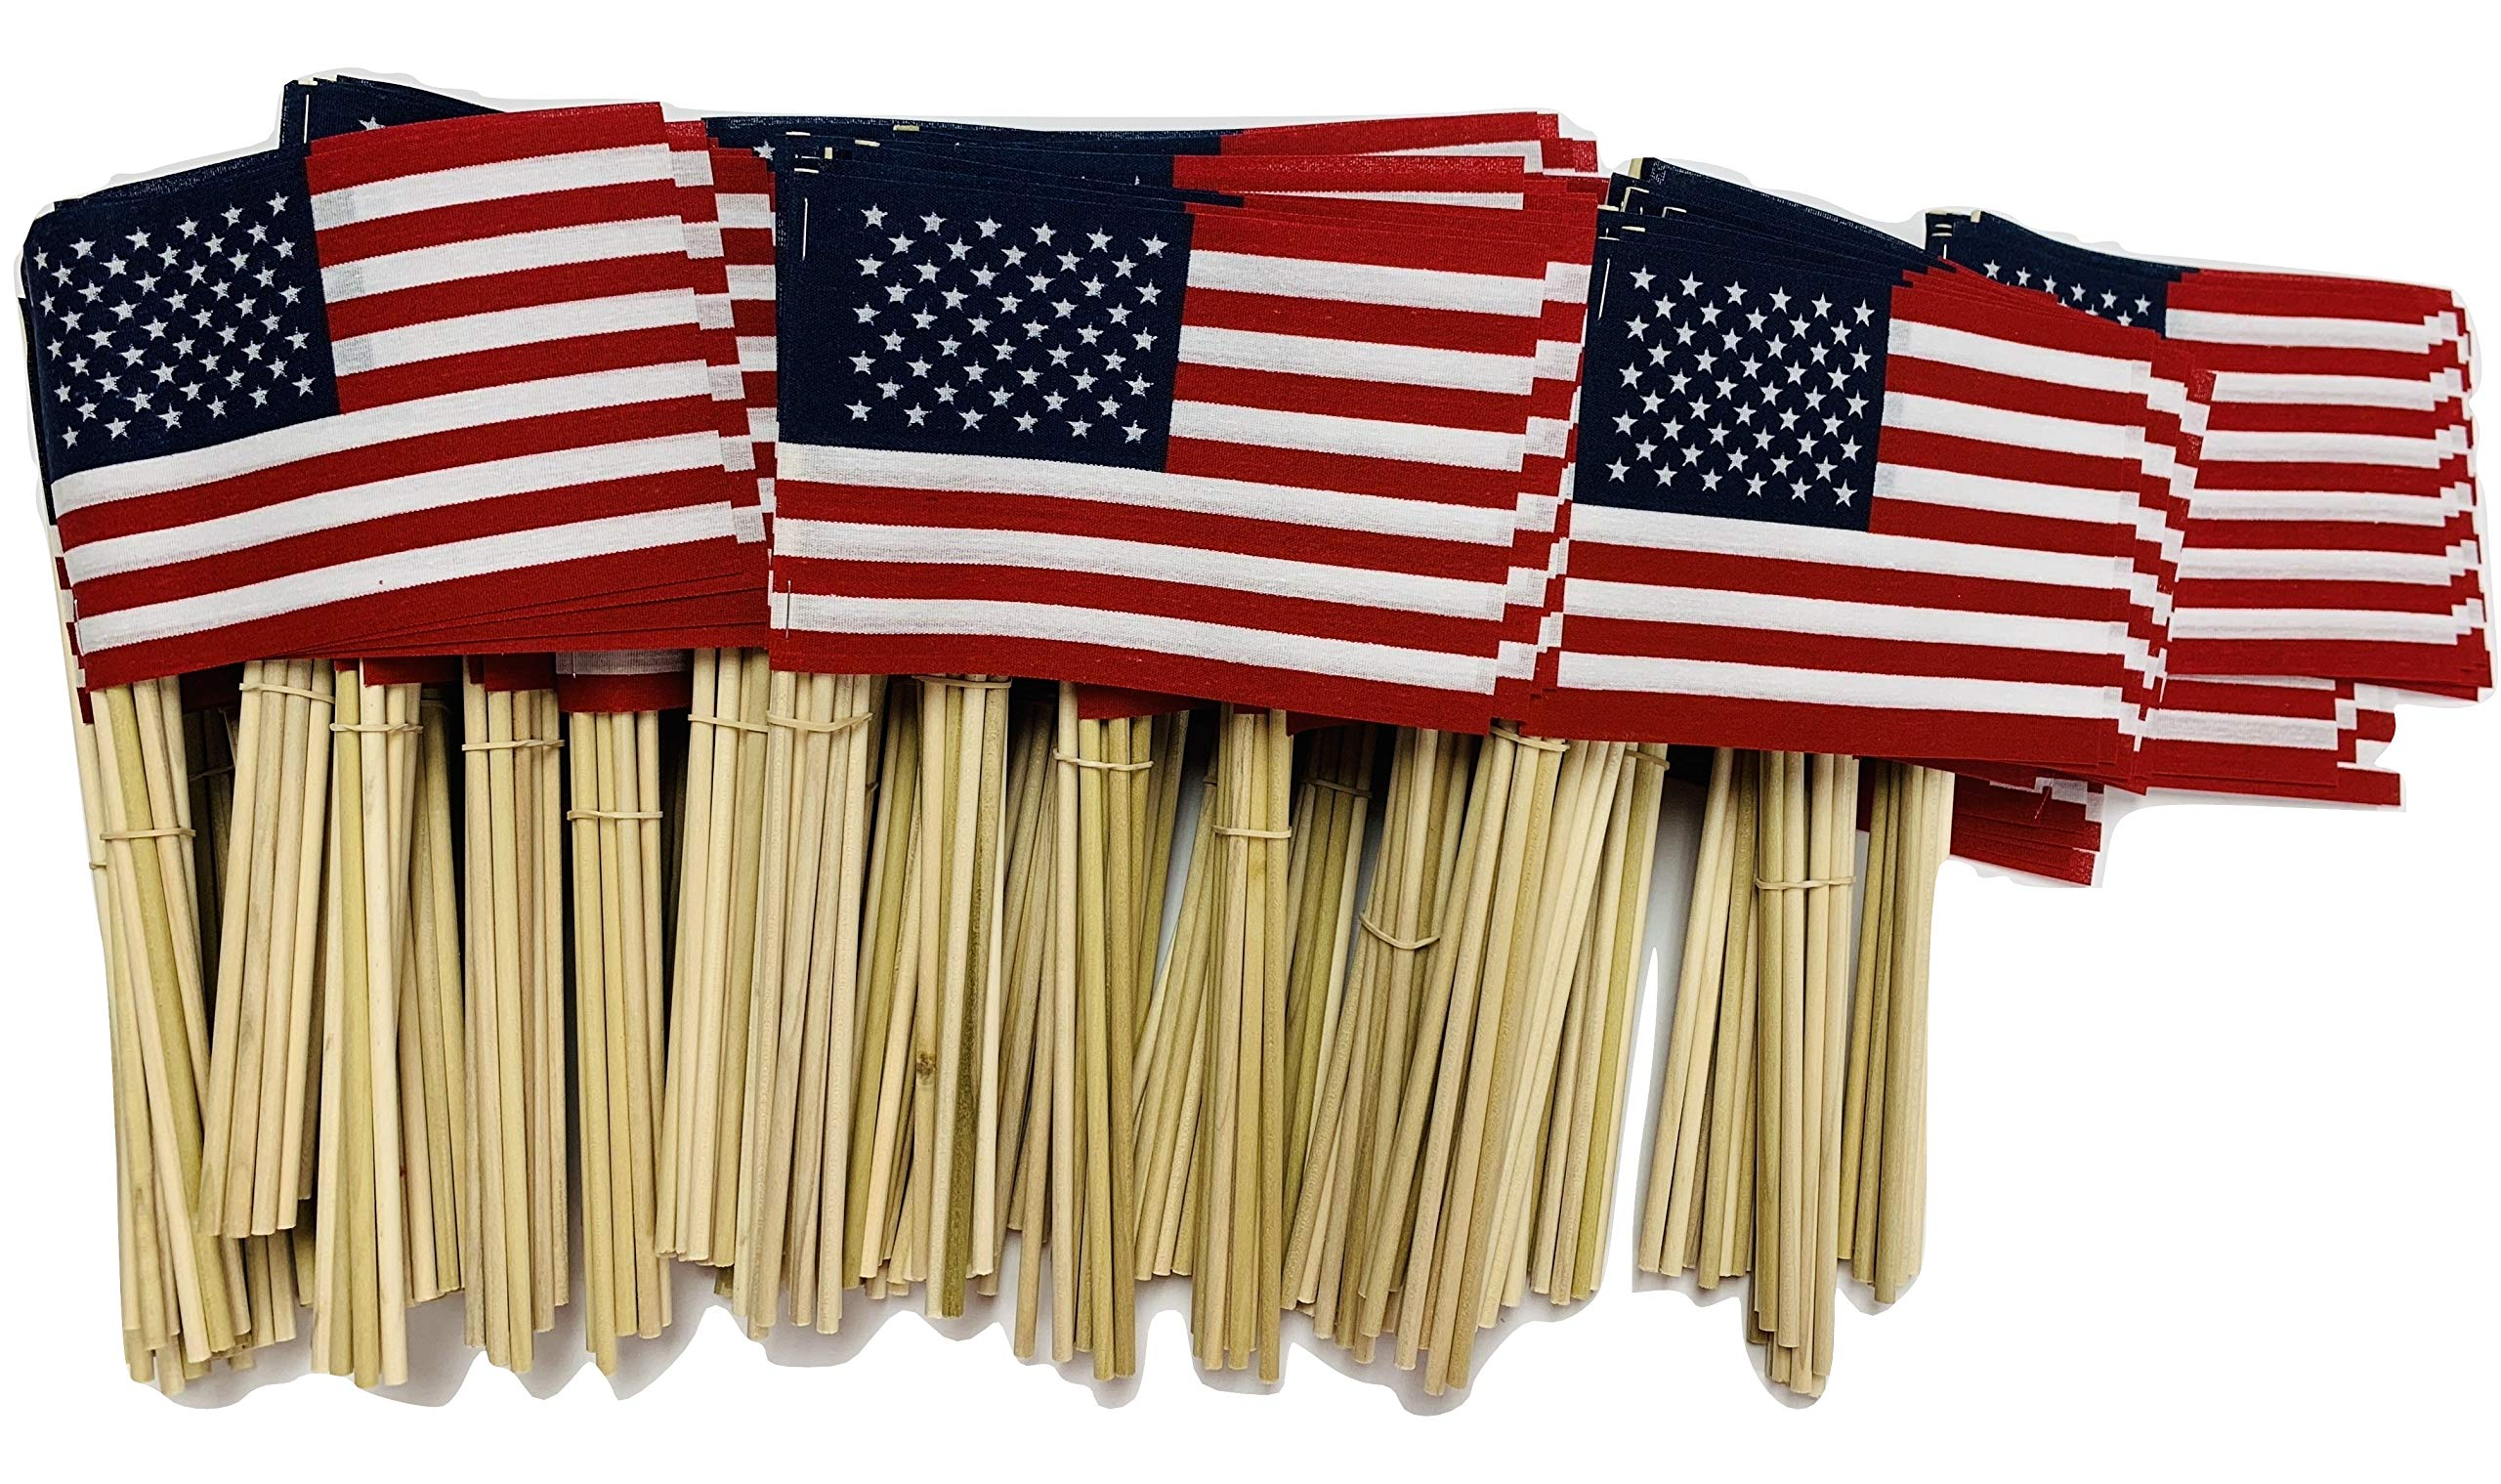 WindStrong® 4x6 Inch US American Hand Held Stick Flags No Tip on 10 Inch Dowel for Schools and Business Made in The USA (500)